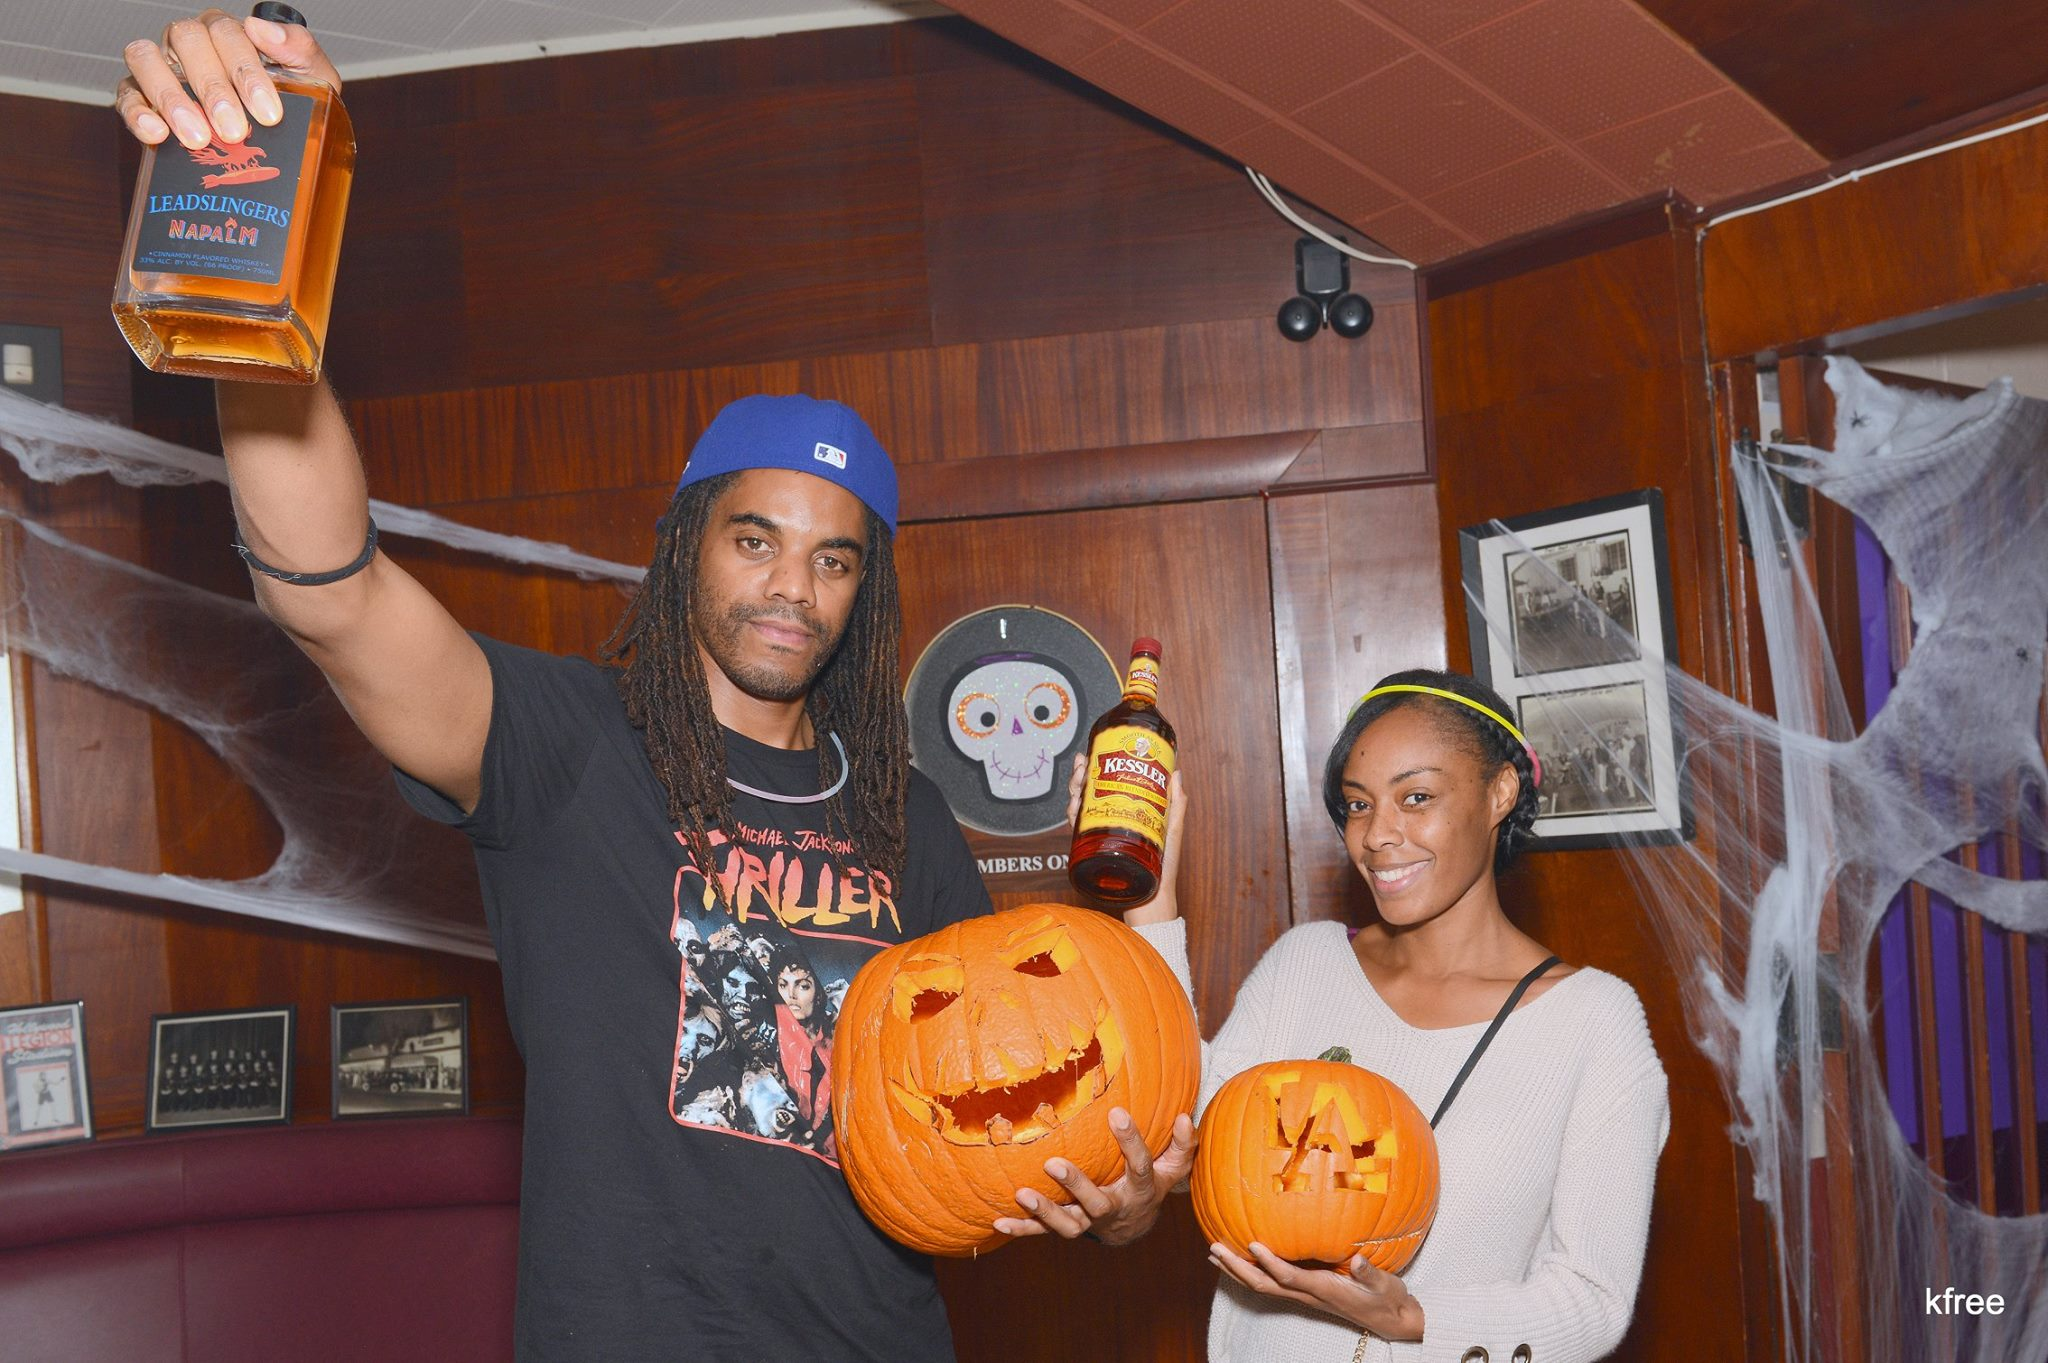 Halloween 2017! Great party and pumpkin carving contest! More pics available on our private Facebook group: CLICK HERE . Photos by Keven Freedman